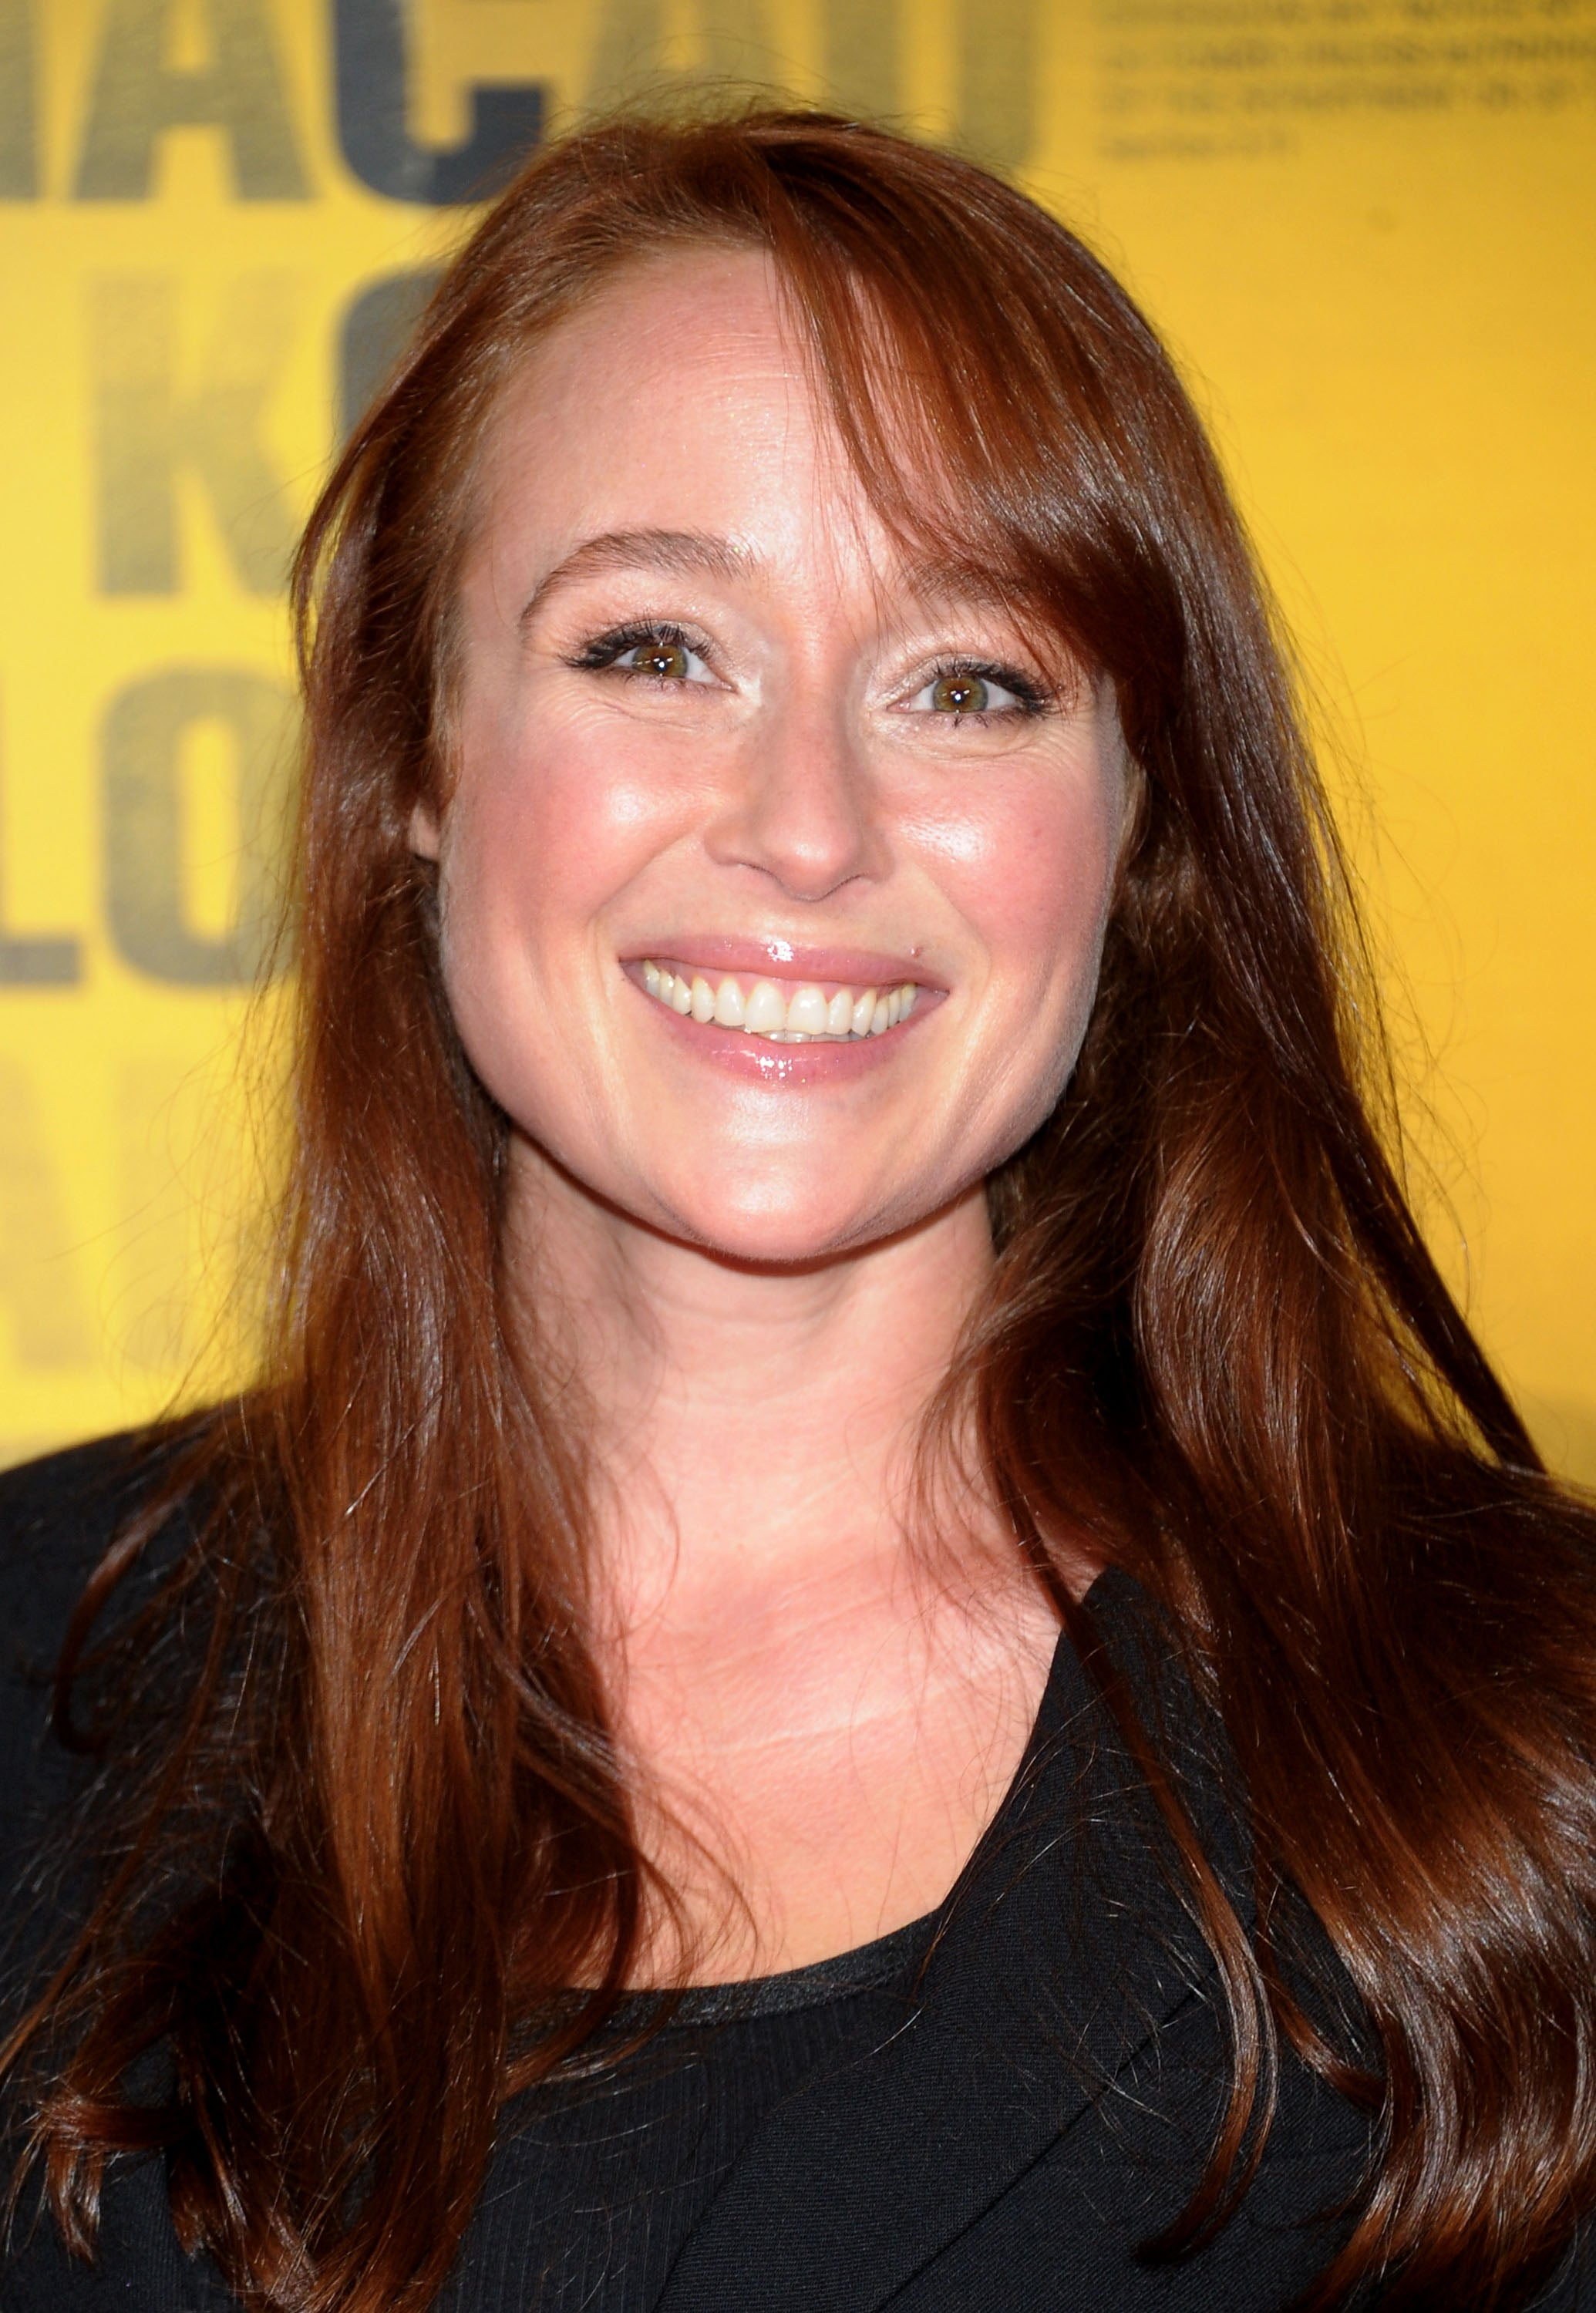 jennifer ehle nowjennifer ehle films, jennifer ehle now, jennifer ehle 1995, jennifer ehle movies and tv shows, jennifer ehle accent, jennifer ehle photo, jennifer ehle possesion, jennifer ehle mother, jennifer ehle 2015, jennifer ehle wikipedia, jennifer ehle kiss, jennifer ehle 2016, jennifer ehle colin firth, jennifer ehle young, jennifer ehle fifty shades of grey, jennifer ehle theatre, jennifer ehle husband, jennifer ehle eye colour, jennifer ehle instagram, jennifer ehle facebook